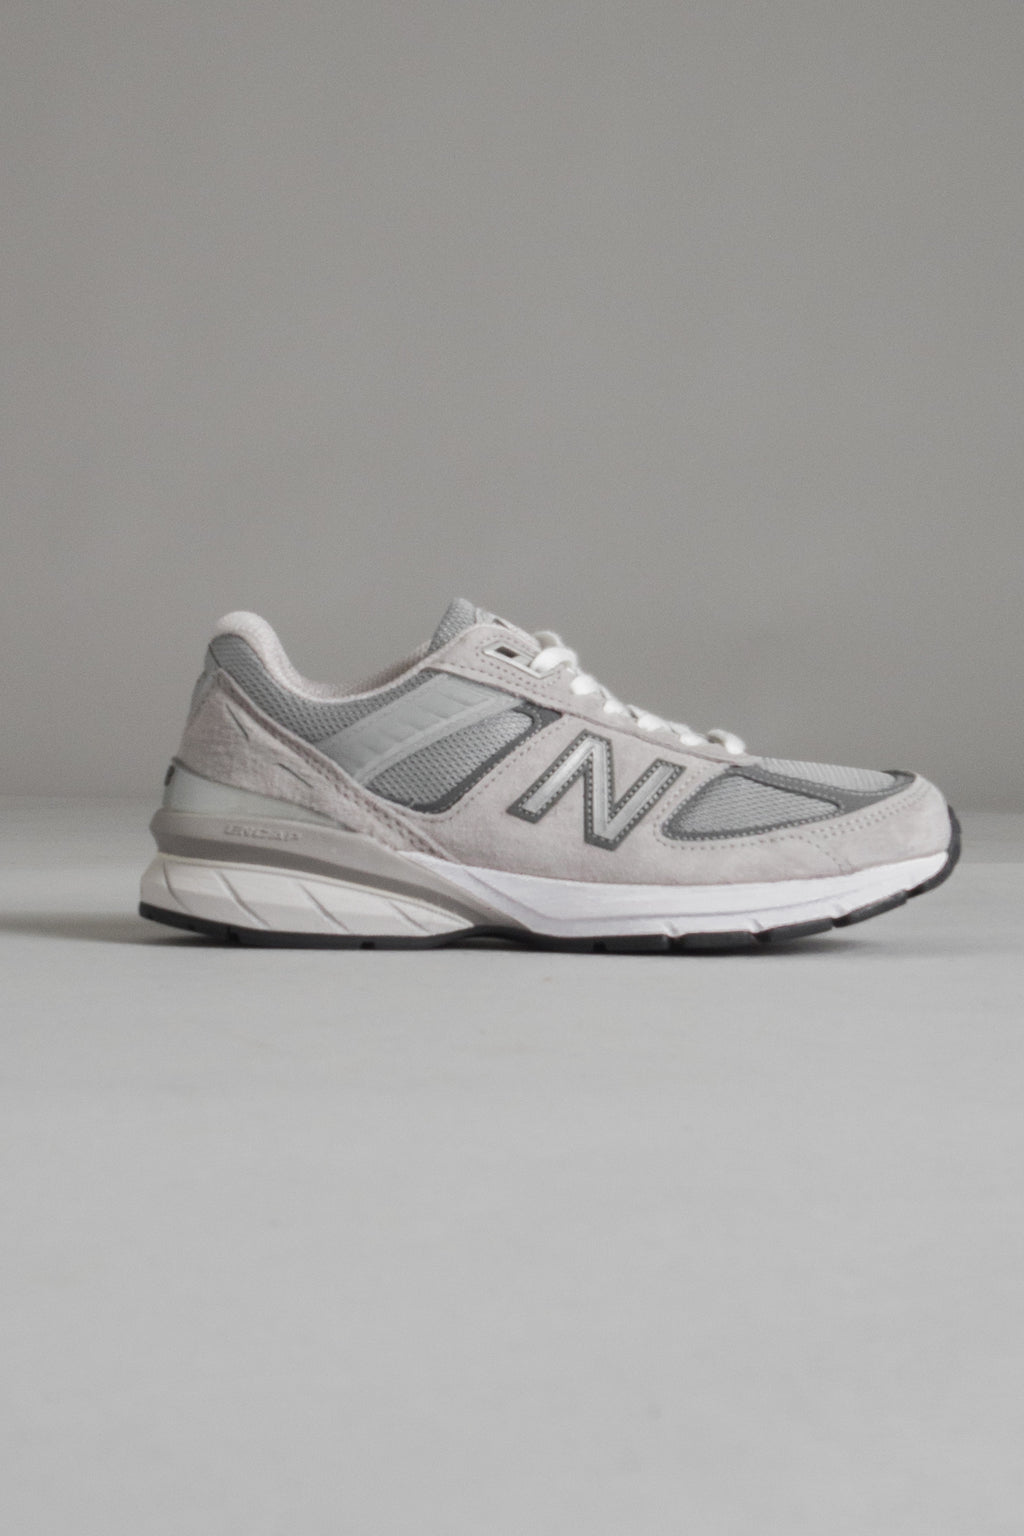 Miesten New Balance 990v5 Made in US - GL5 grey | New Balance